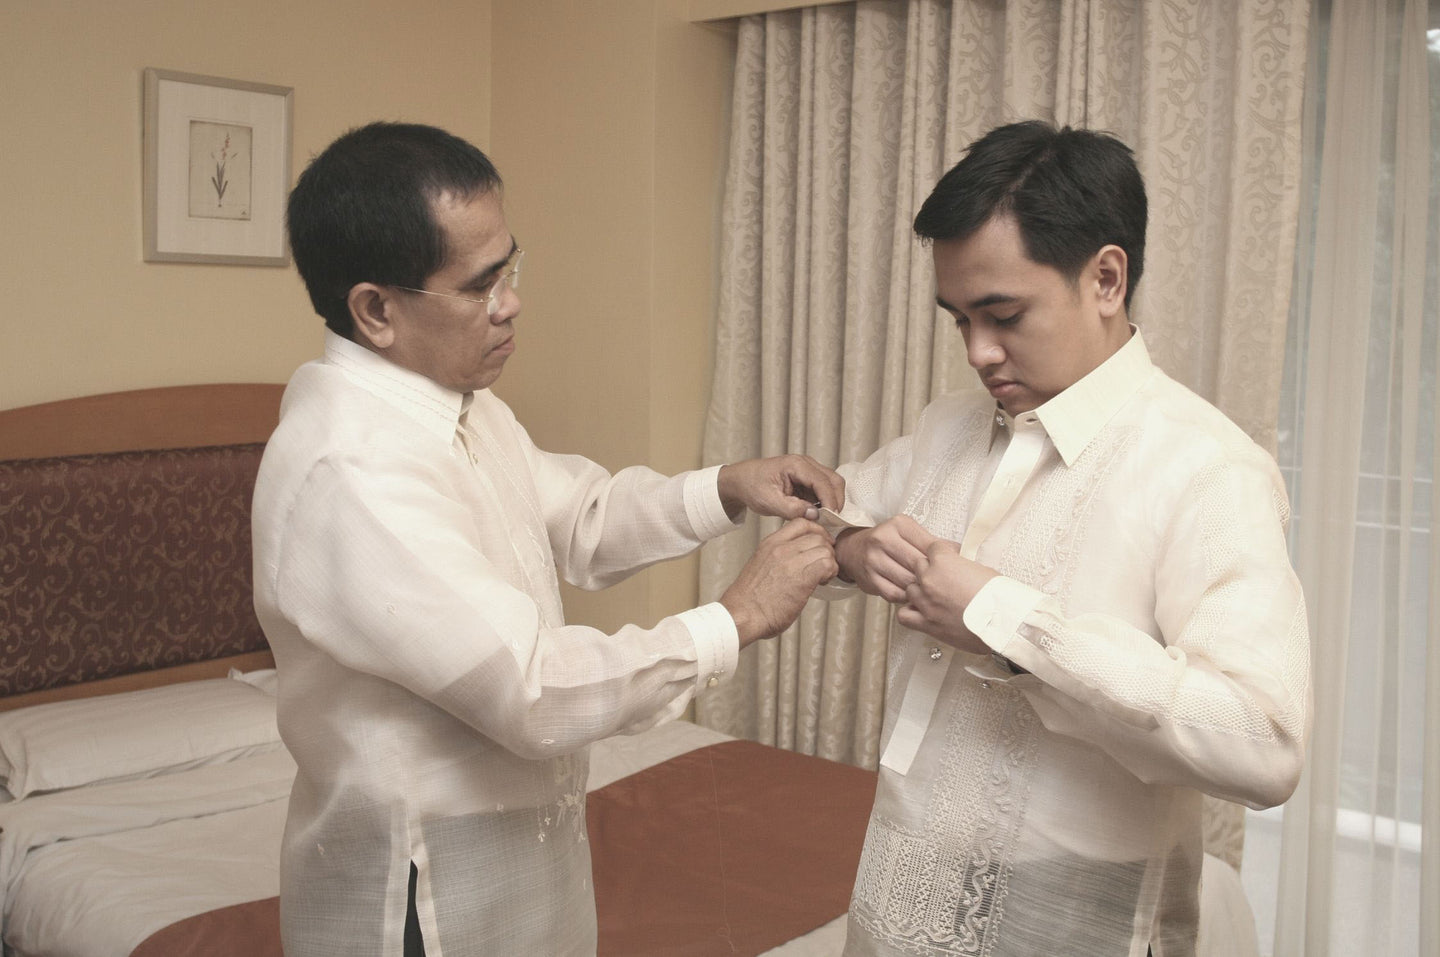 Barong Tagalog for the Groom